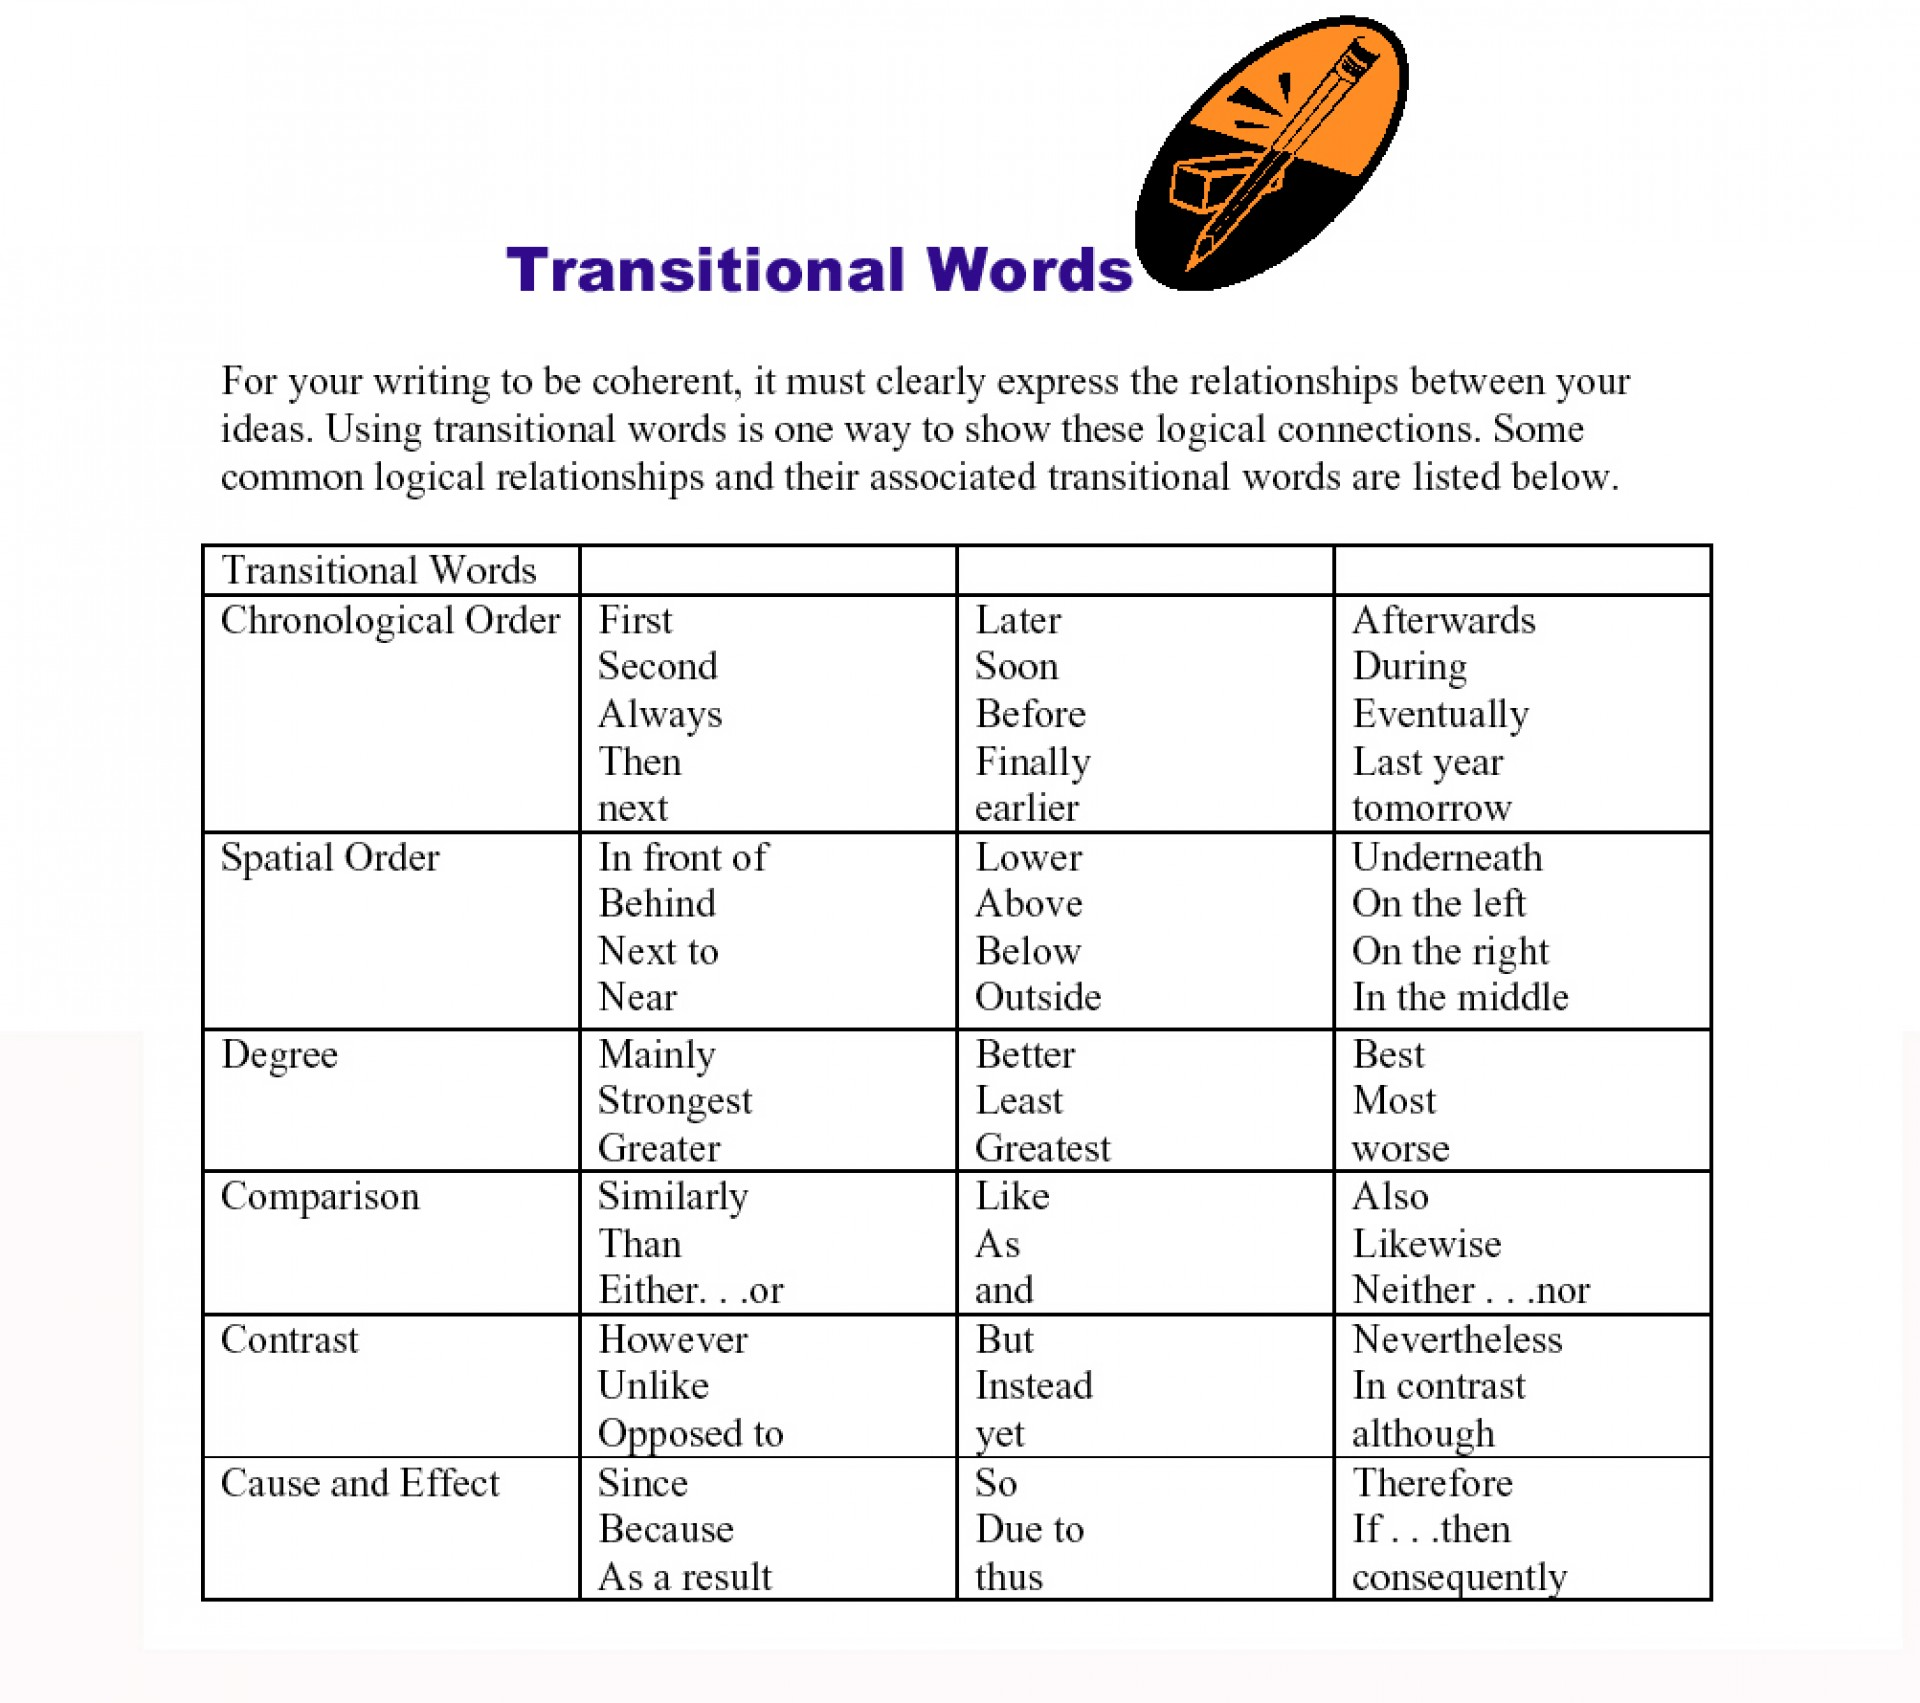 017 Essay Example Comparison Transition Words Stirring 1920